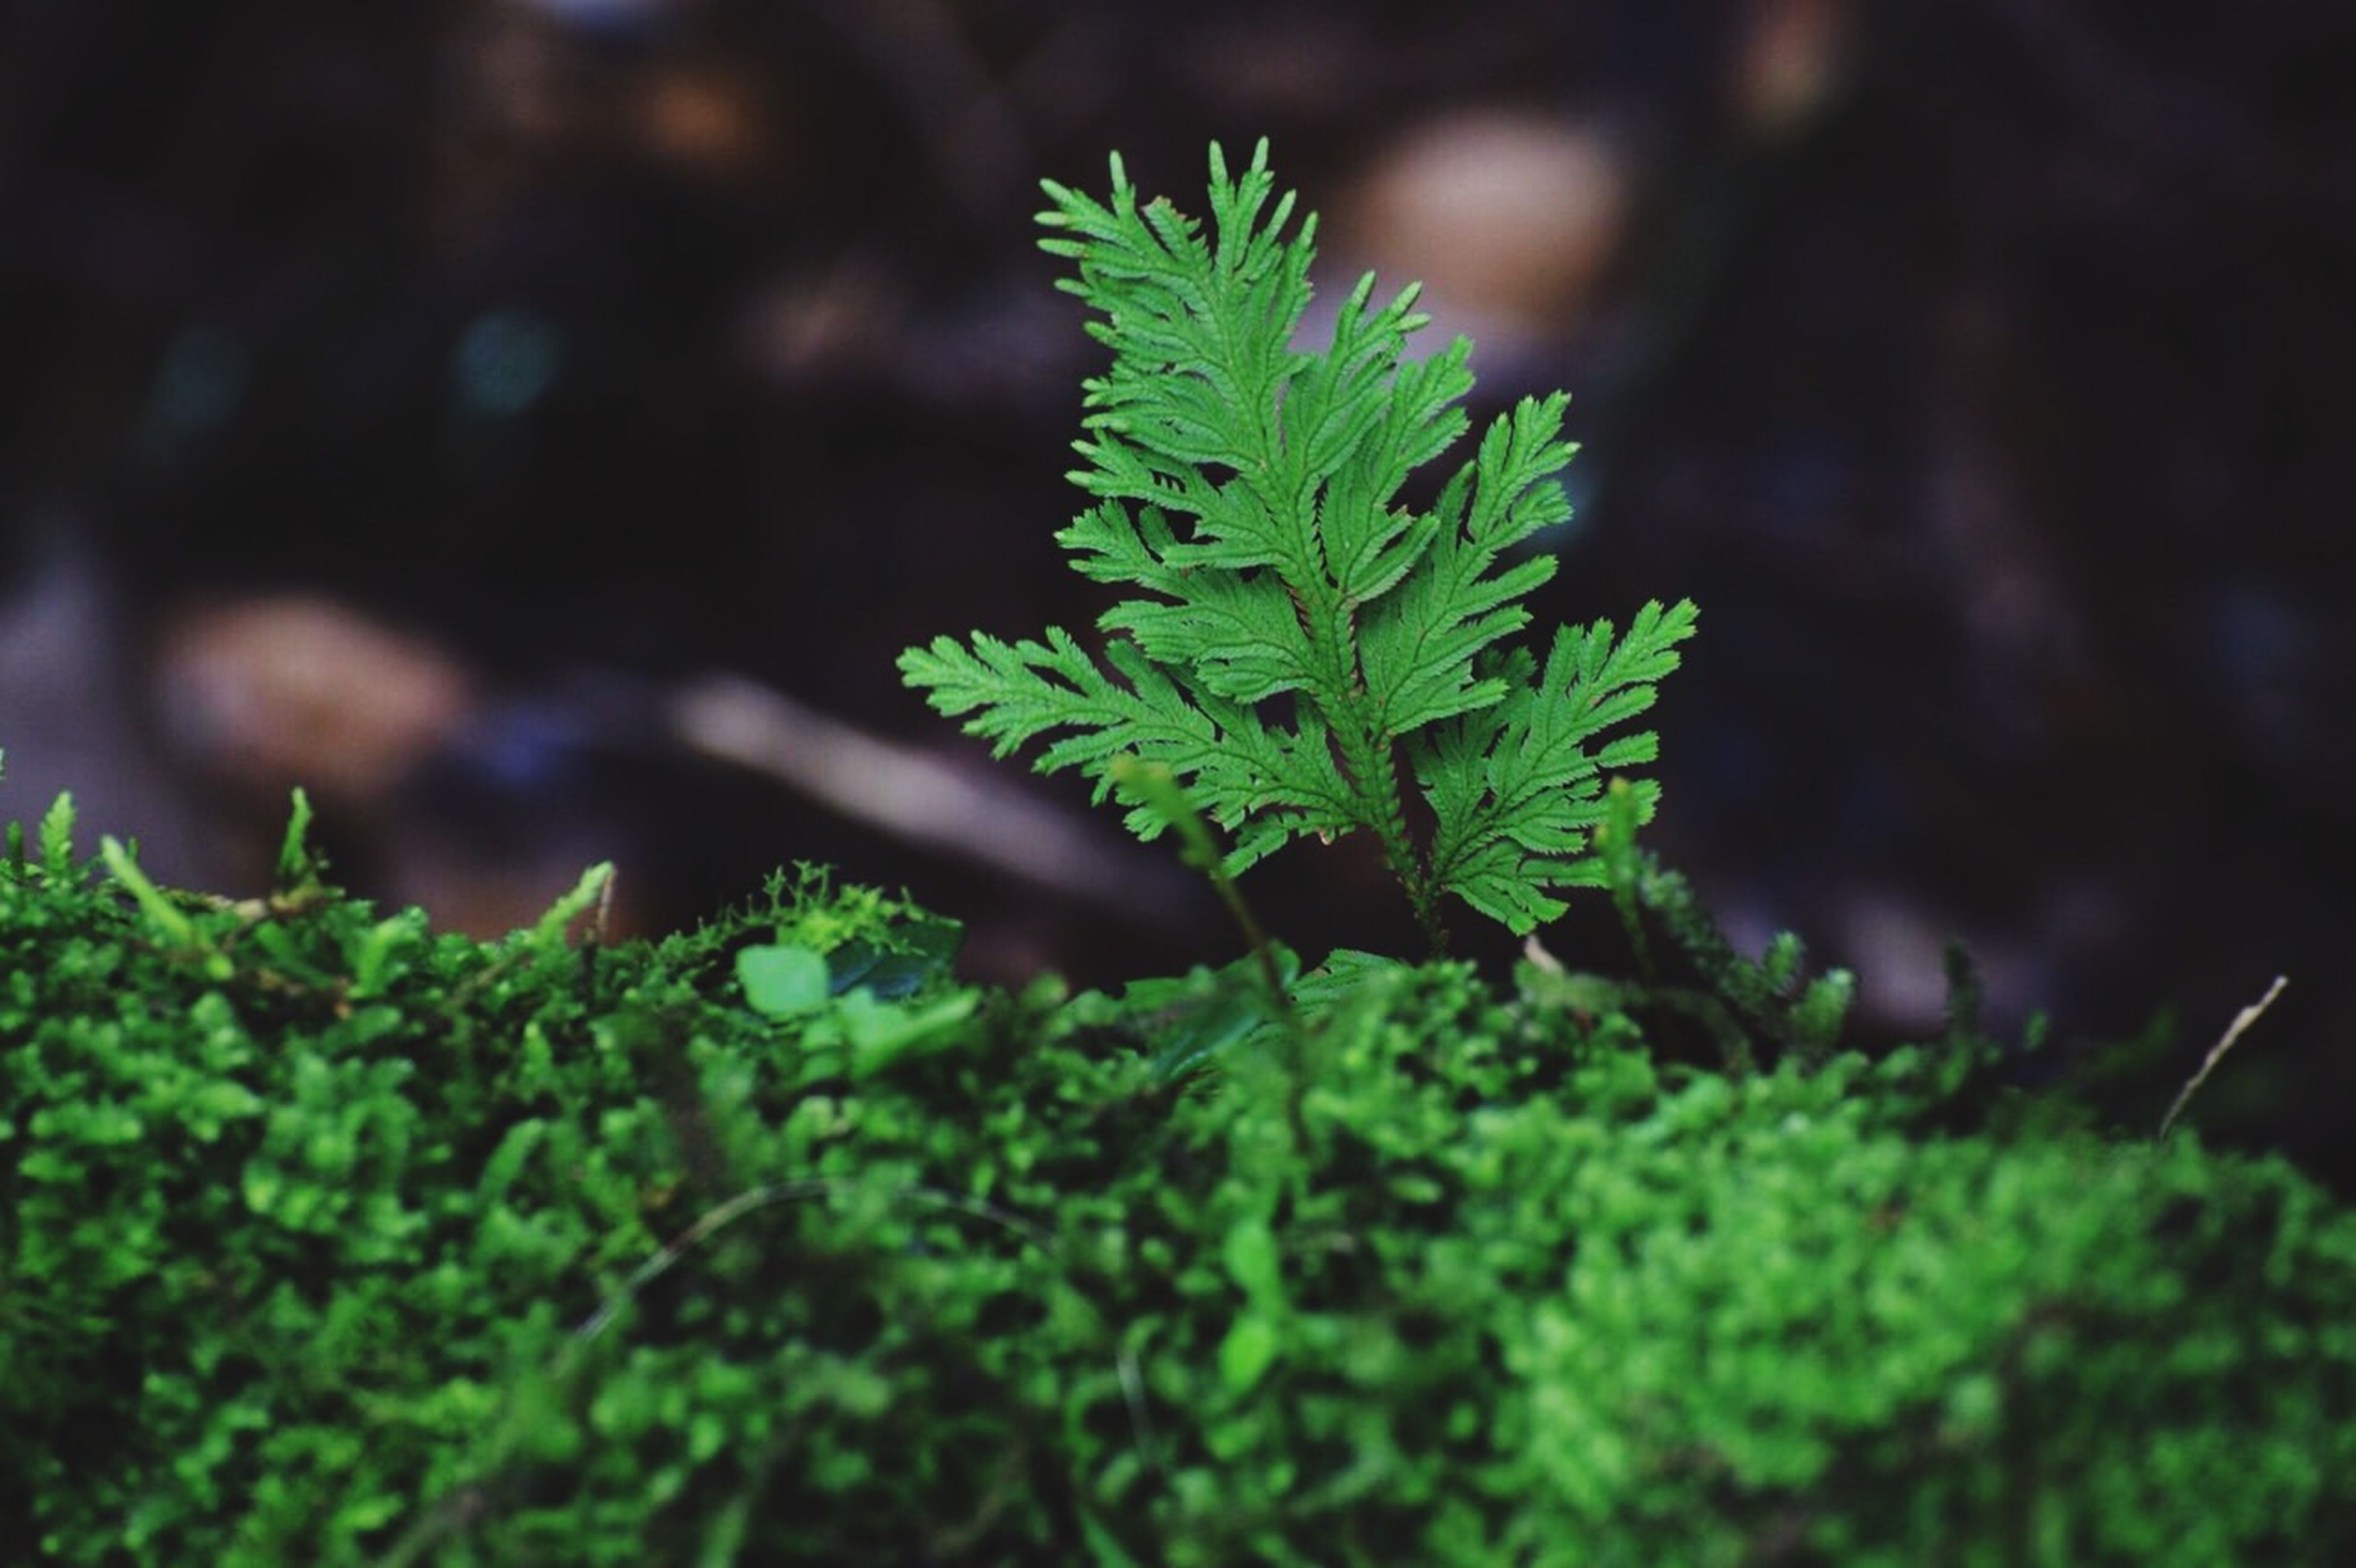 green color, leaf, growth, plant, selective focus, nature, close-up, focus on foreground, growing, green, beauty in nature, tranquility, moss, outdoors, freshness, lush foliage, day, no people, forest, sunlight